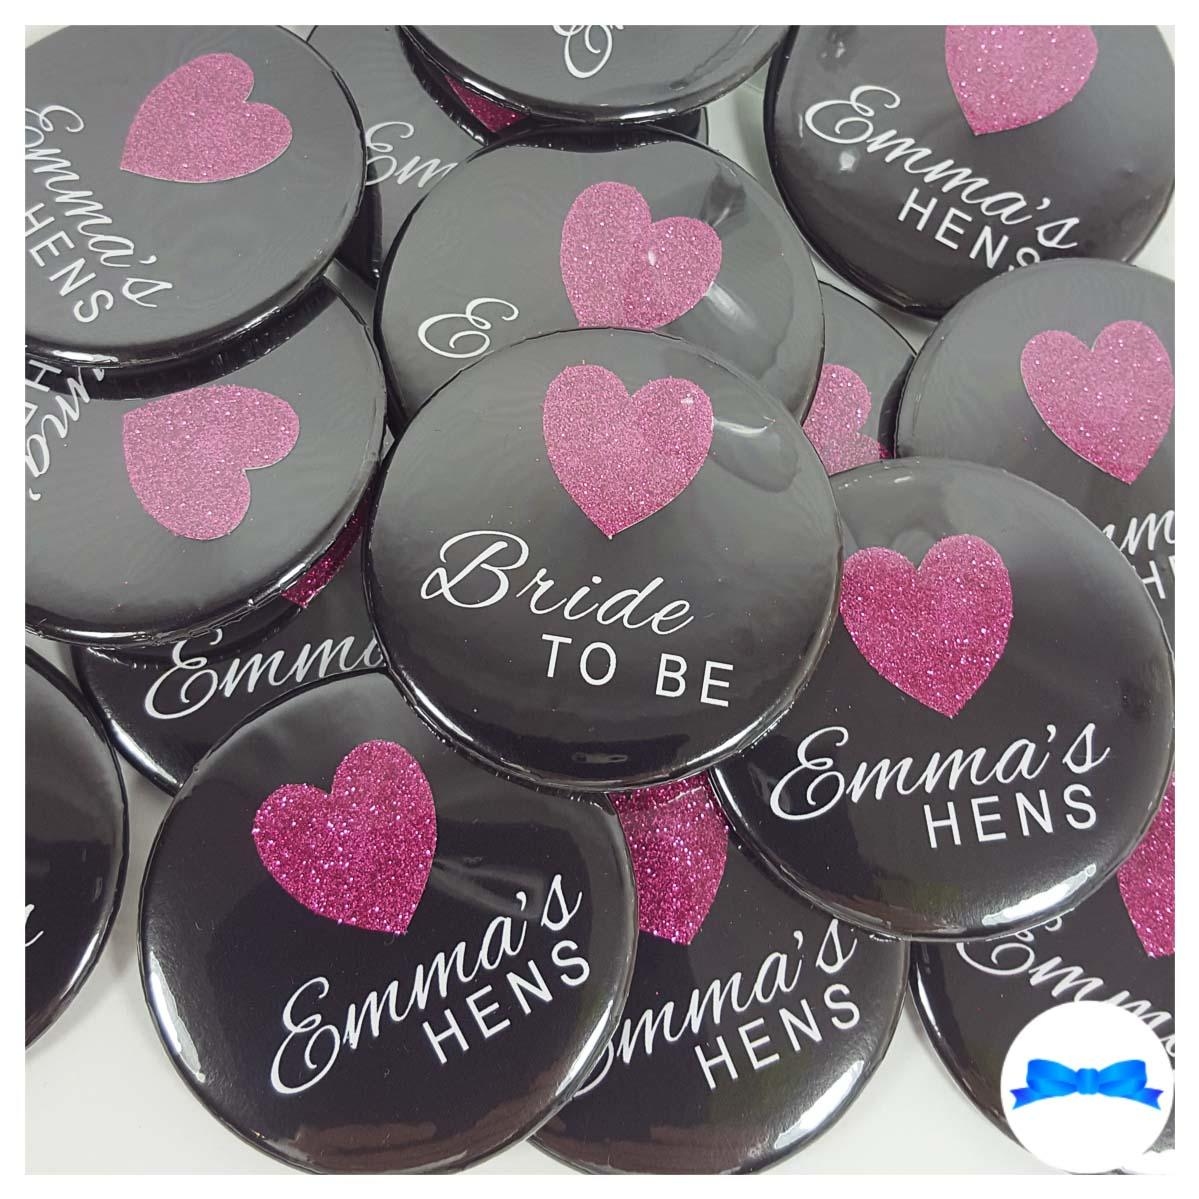 Black hen party badges with purple glitter